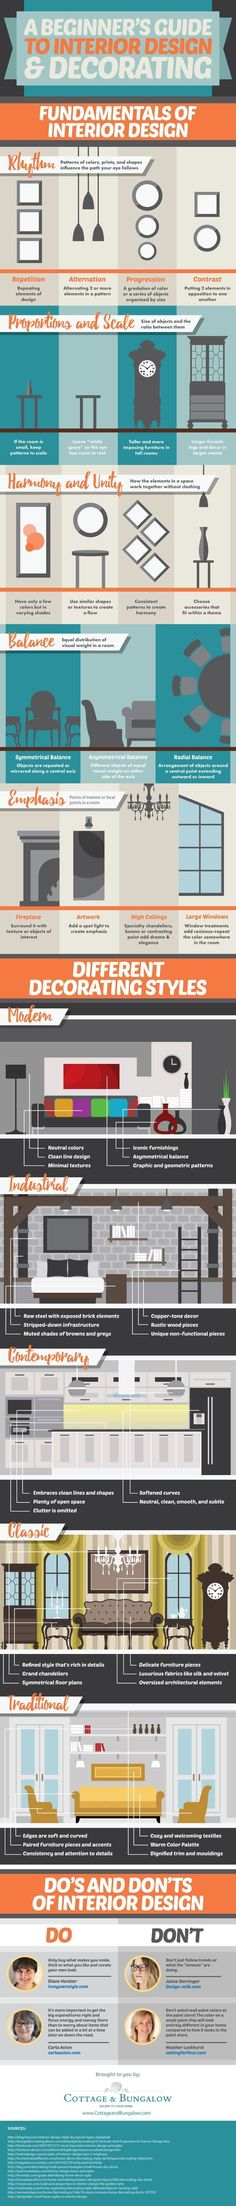 Spring is around the corner, bringing with it new interior design ideas! If you're a beginner to home decor though, here are some tips on how to get it right.